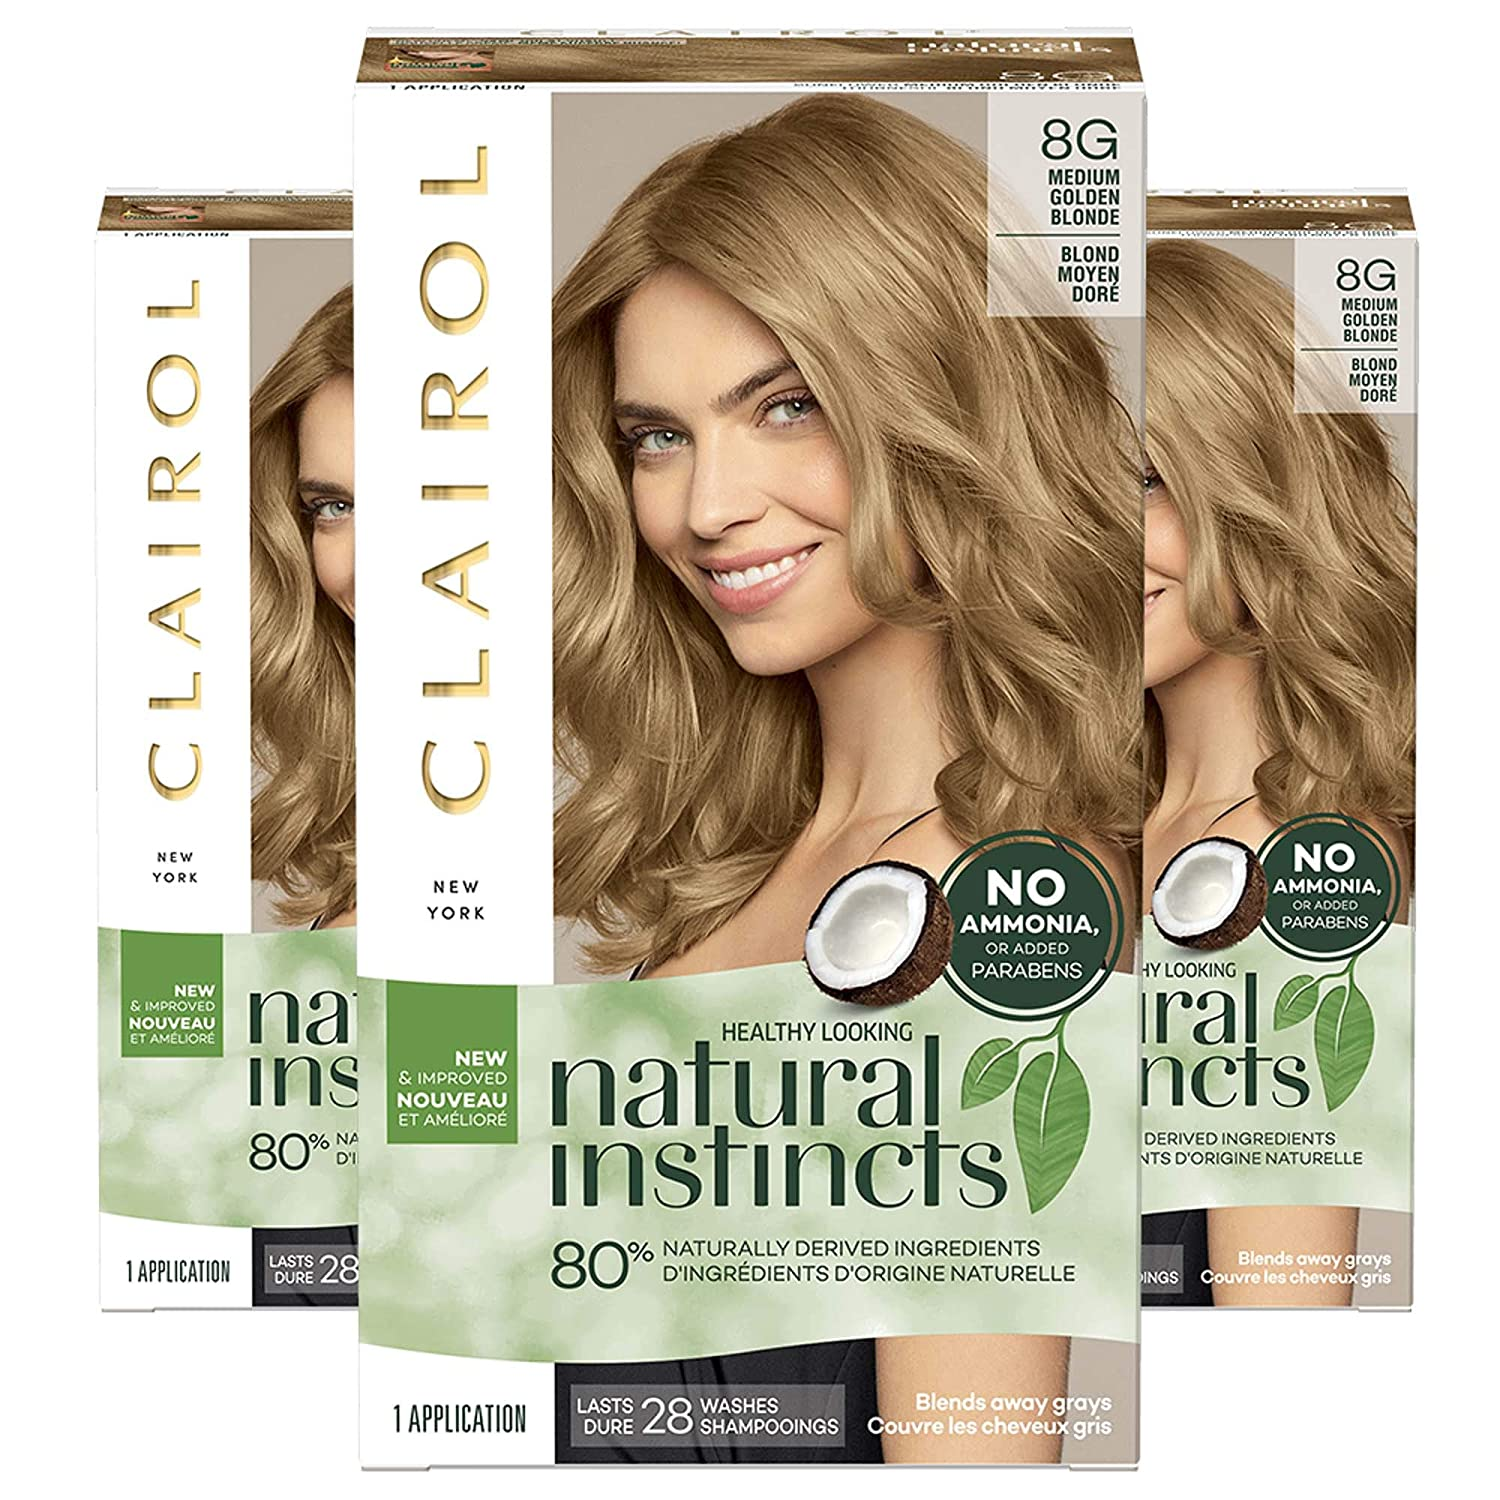 Clairol Natural Instincts Semi-Permanent, 8G Medium Golden Blonde, Sunflower, 3 Count